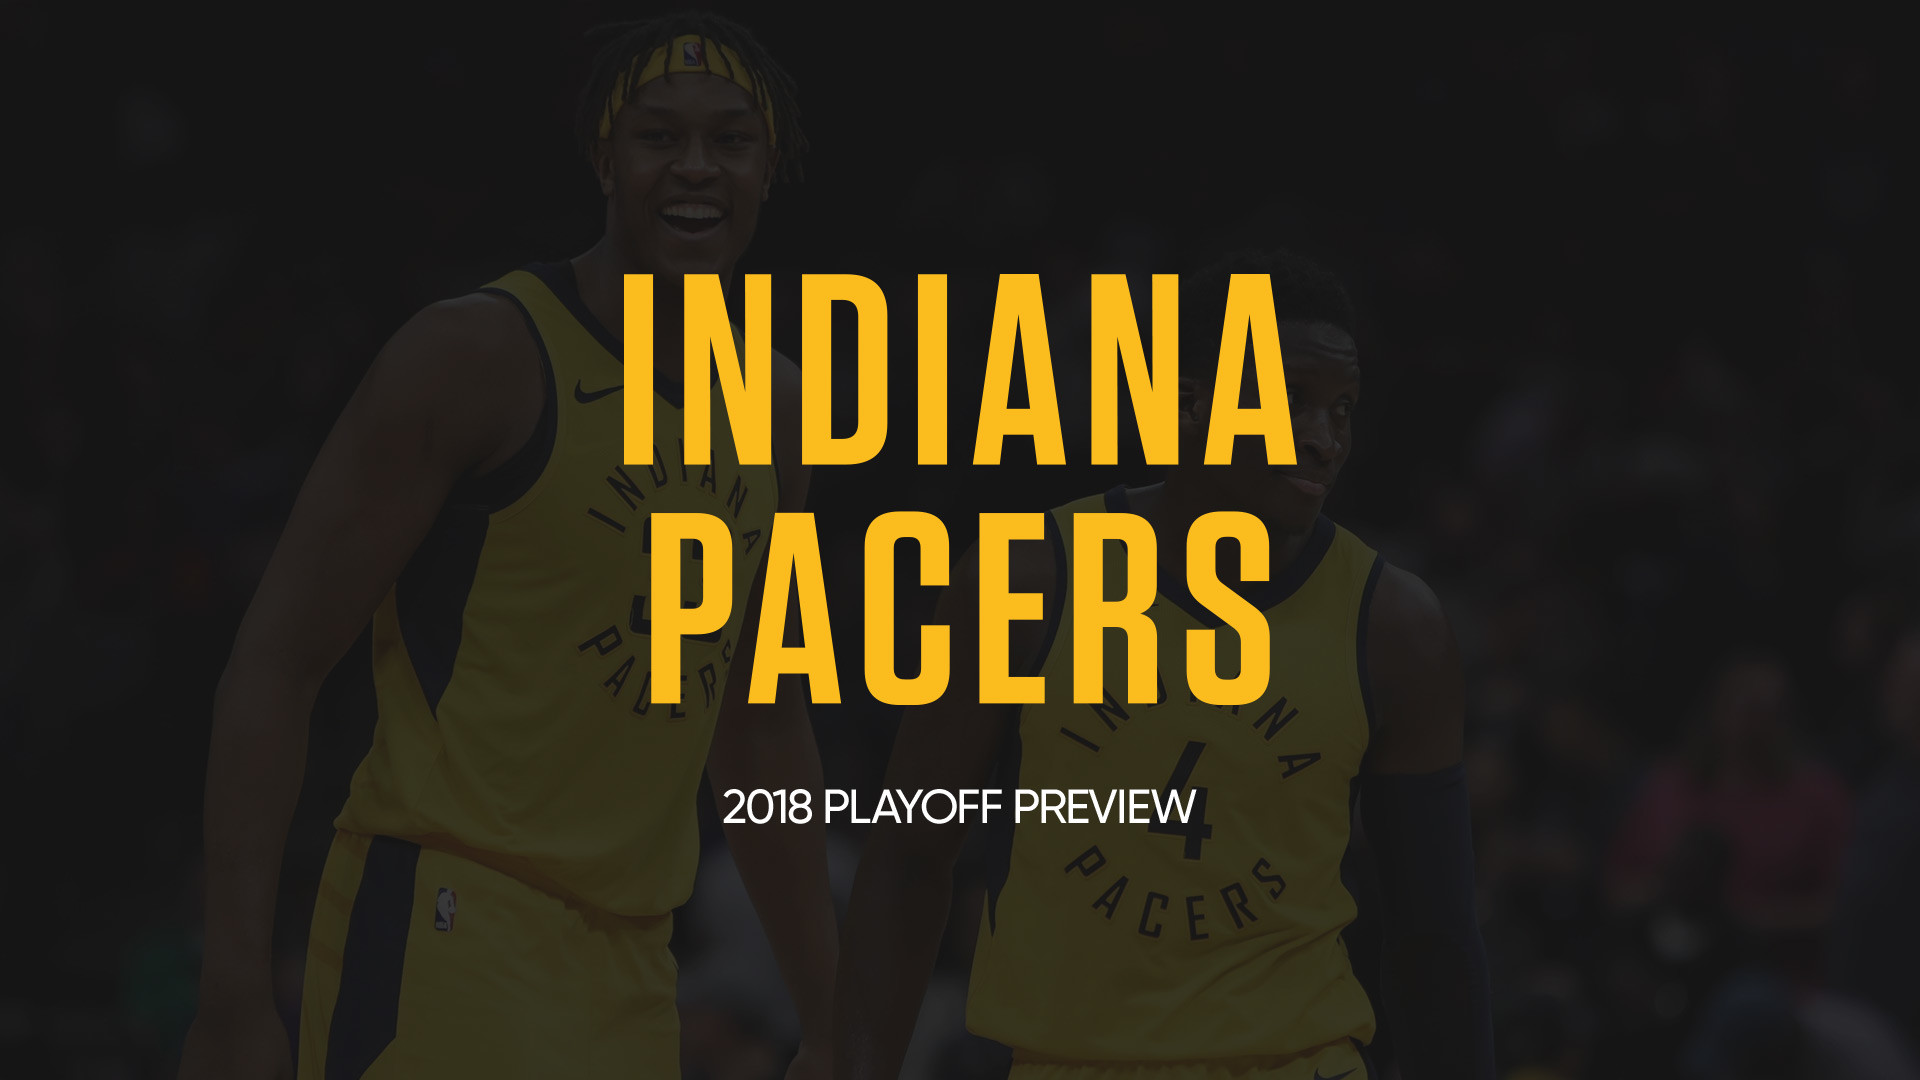 1920x1080 Indiana Pacers 2018 Playoff Preview